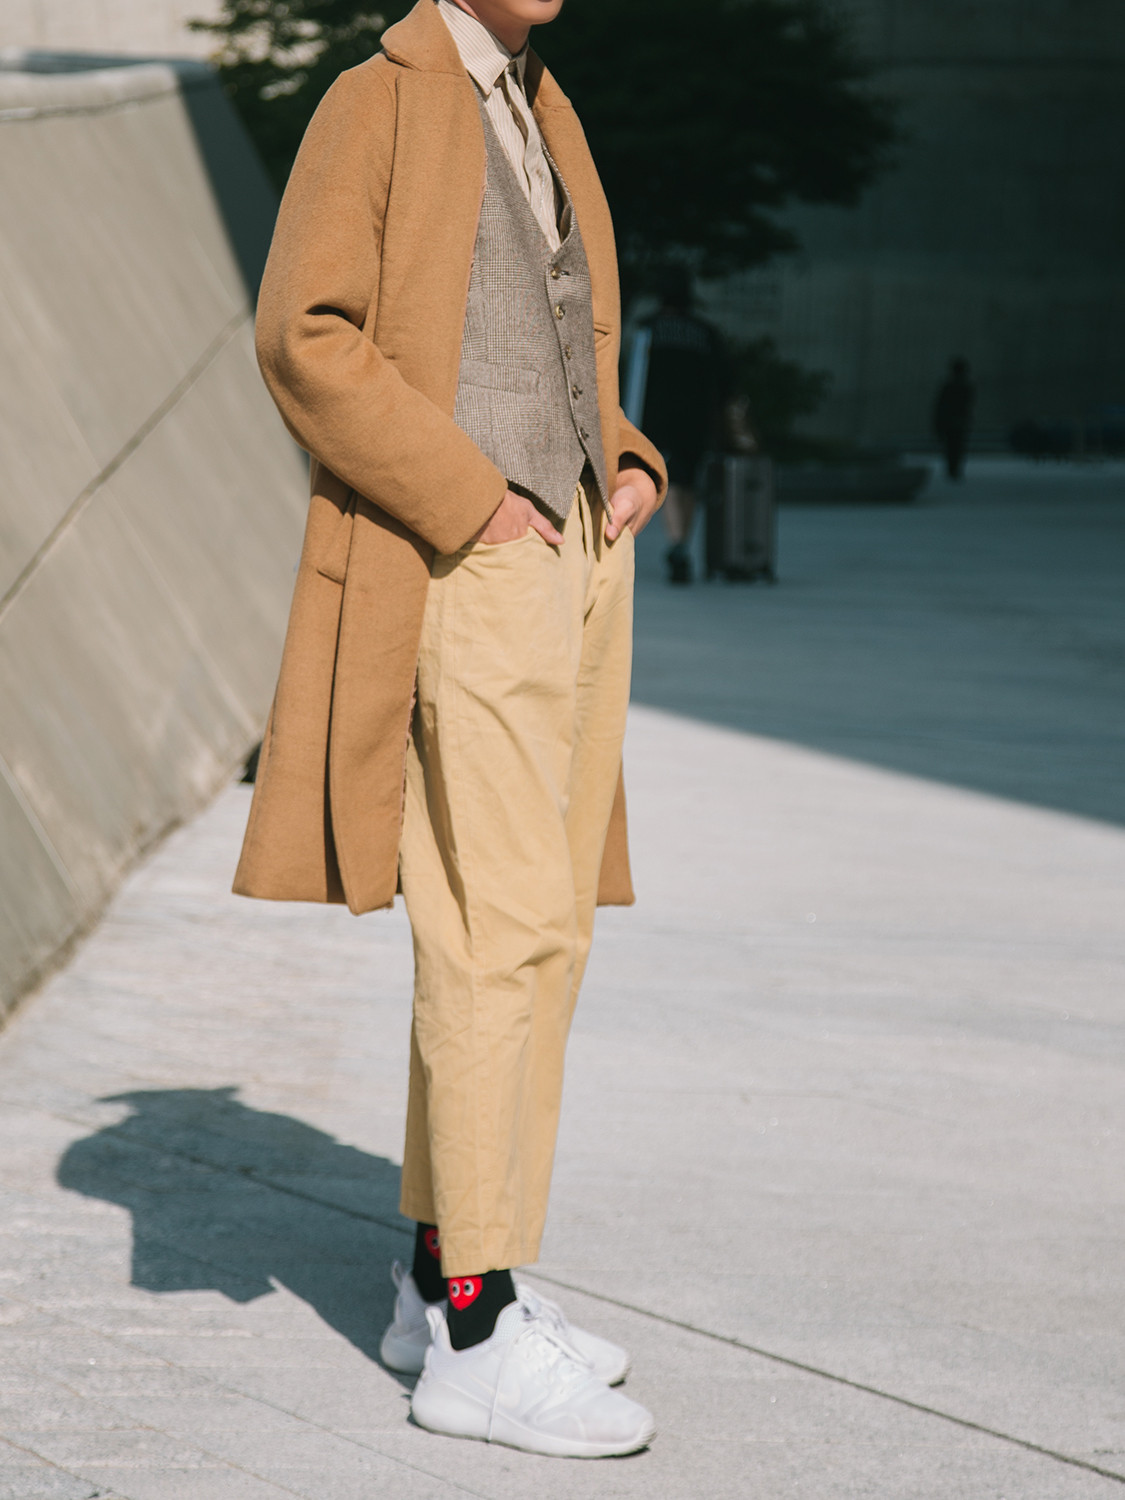 Men's outfit idea for 2021 with neutral camel coat, neutral striped casual shirt, neutral chinos, white everyday trainers. Suitable for spring and autumn.